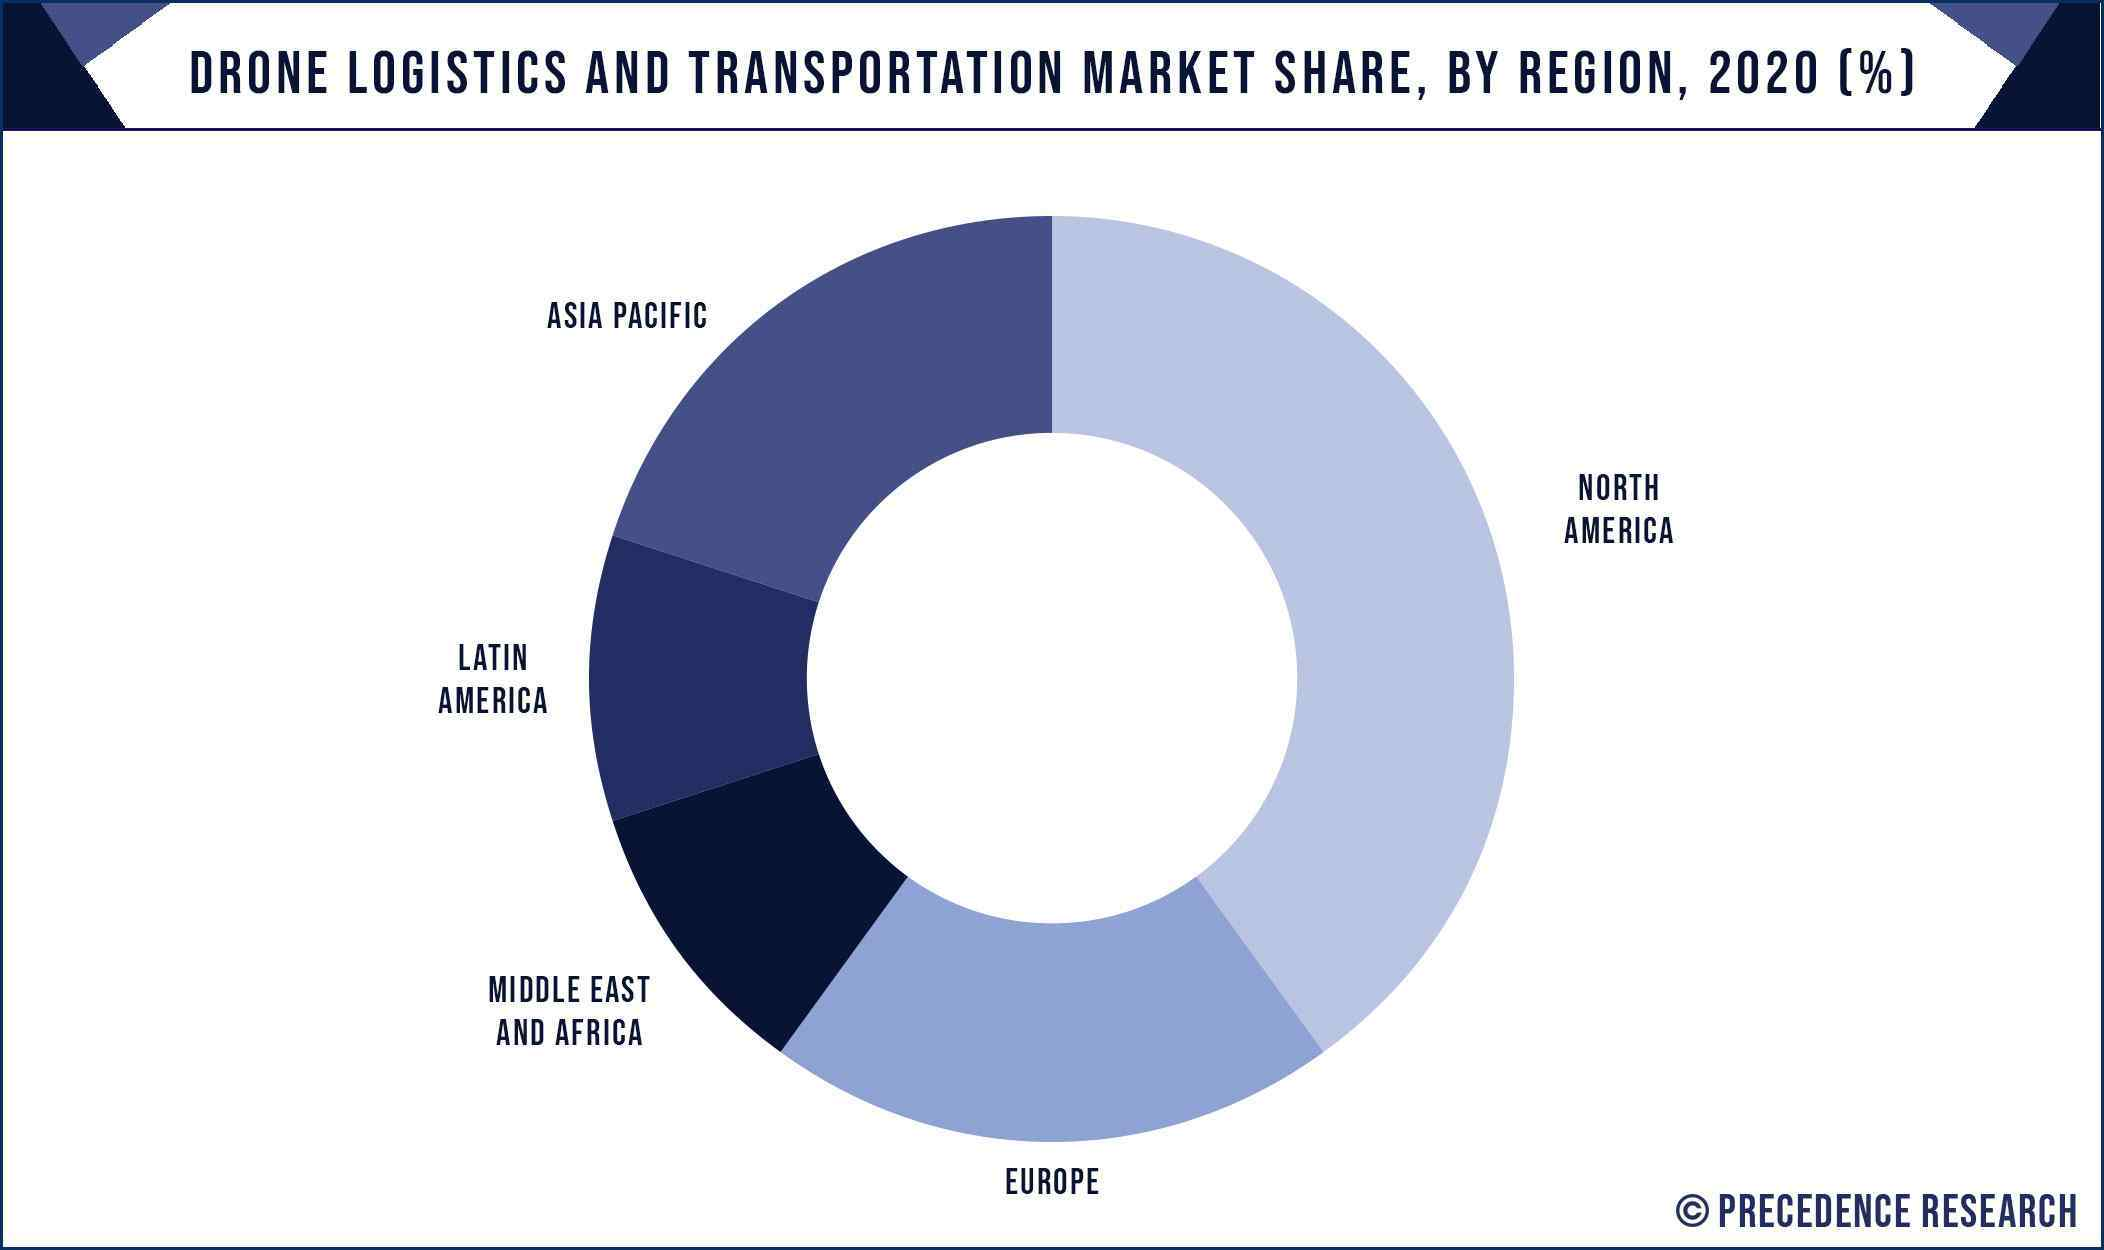 Drone Logistics and Transportation Market Share, By Region, 2020 (%)